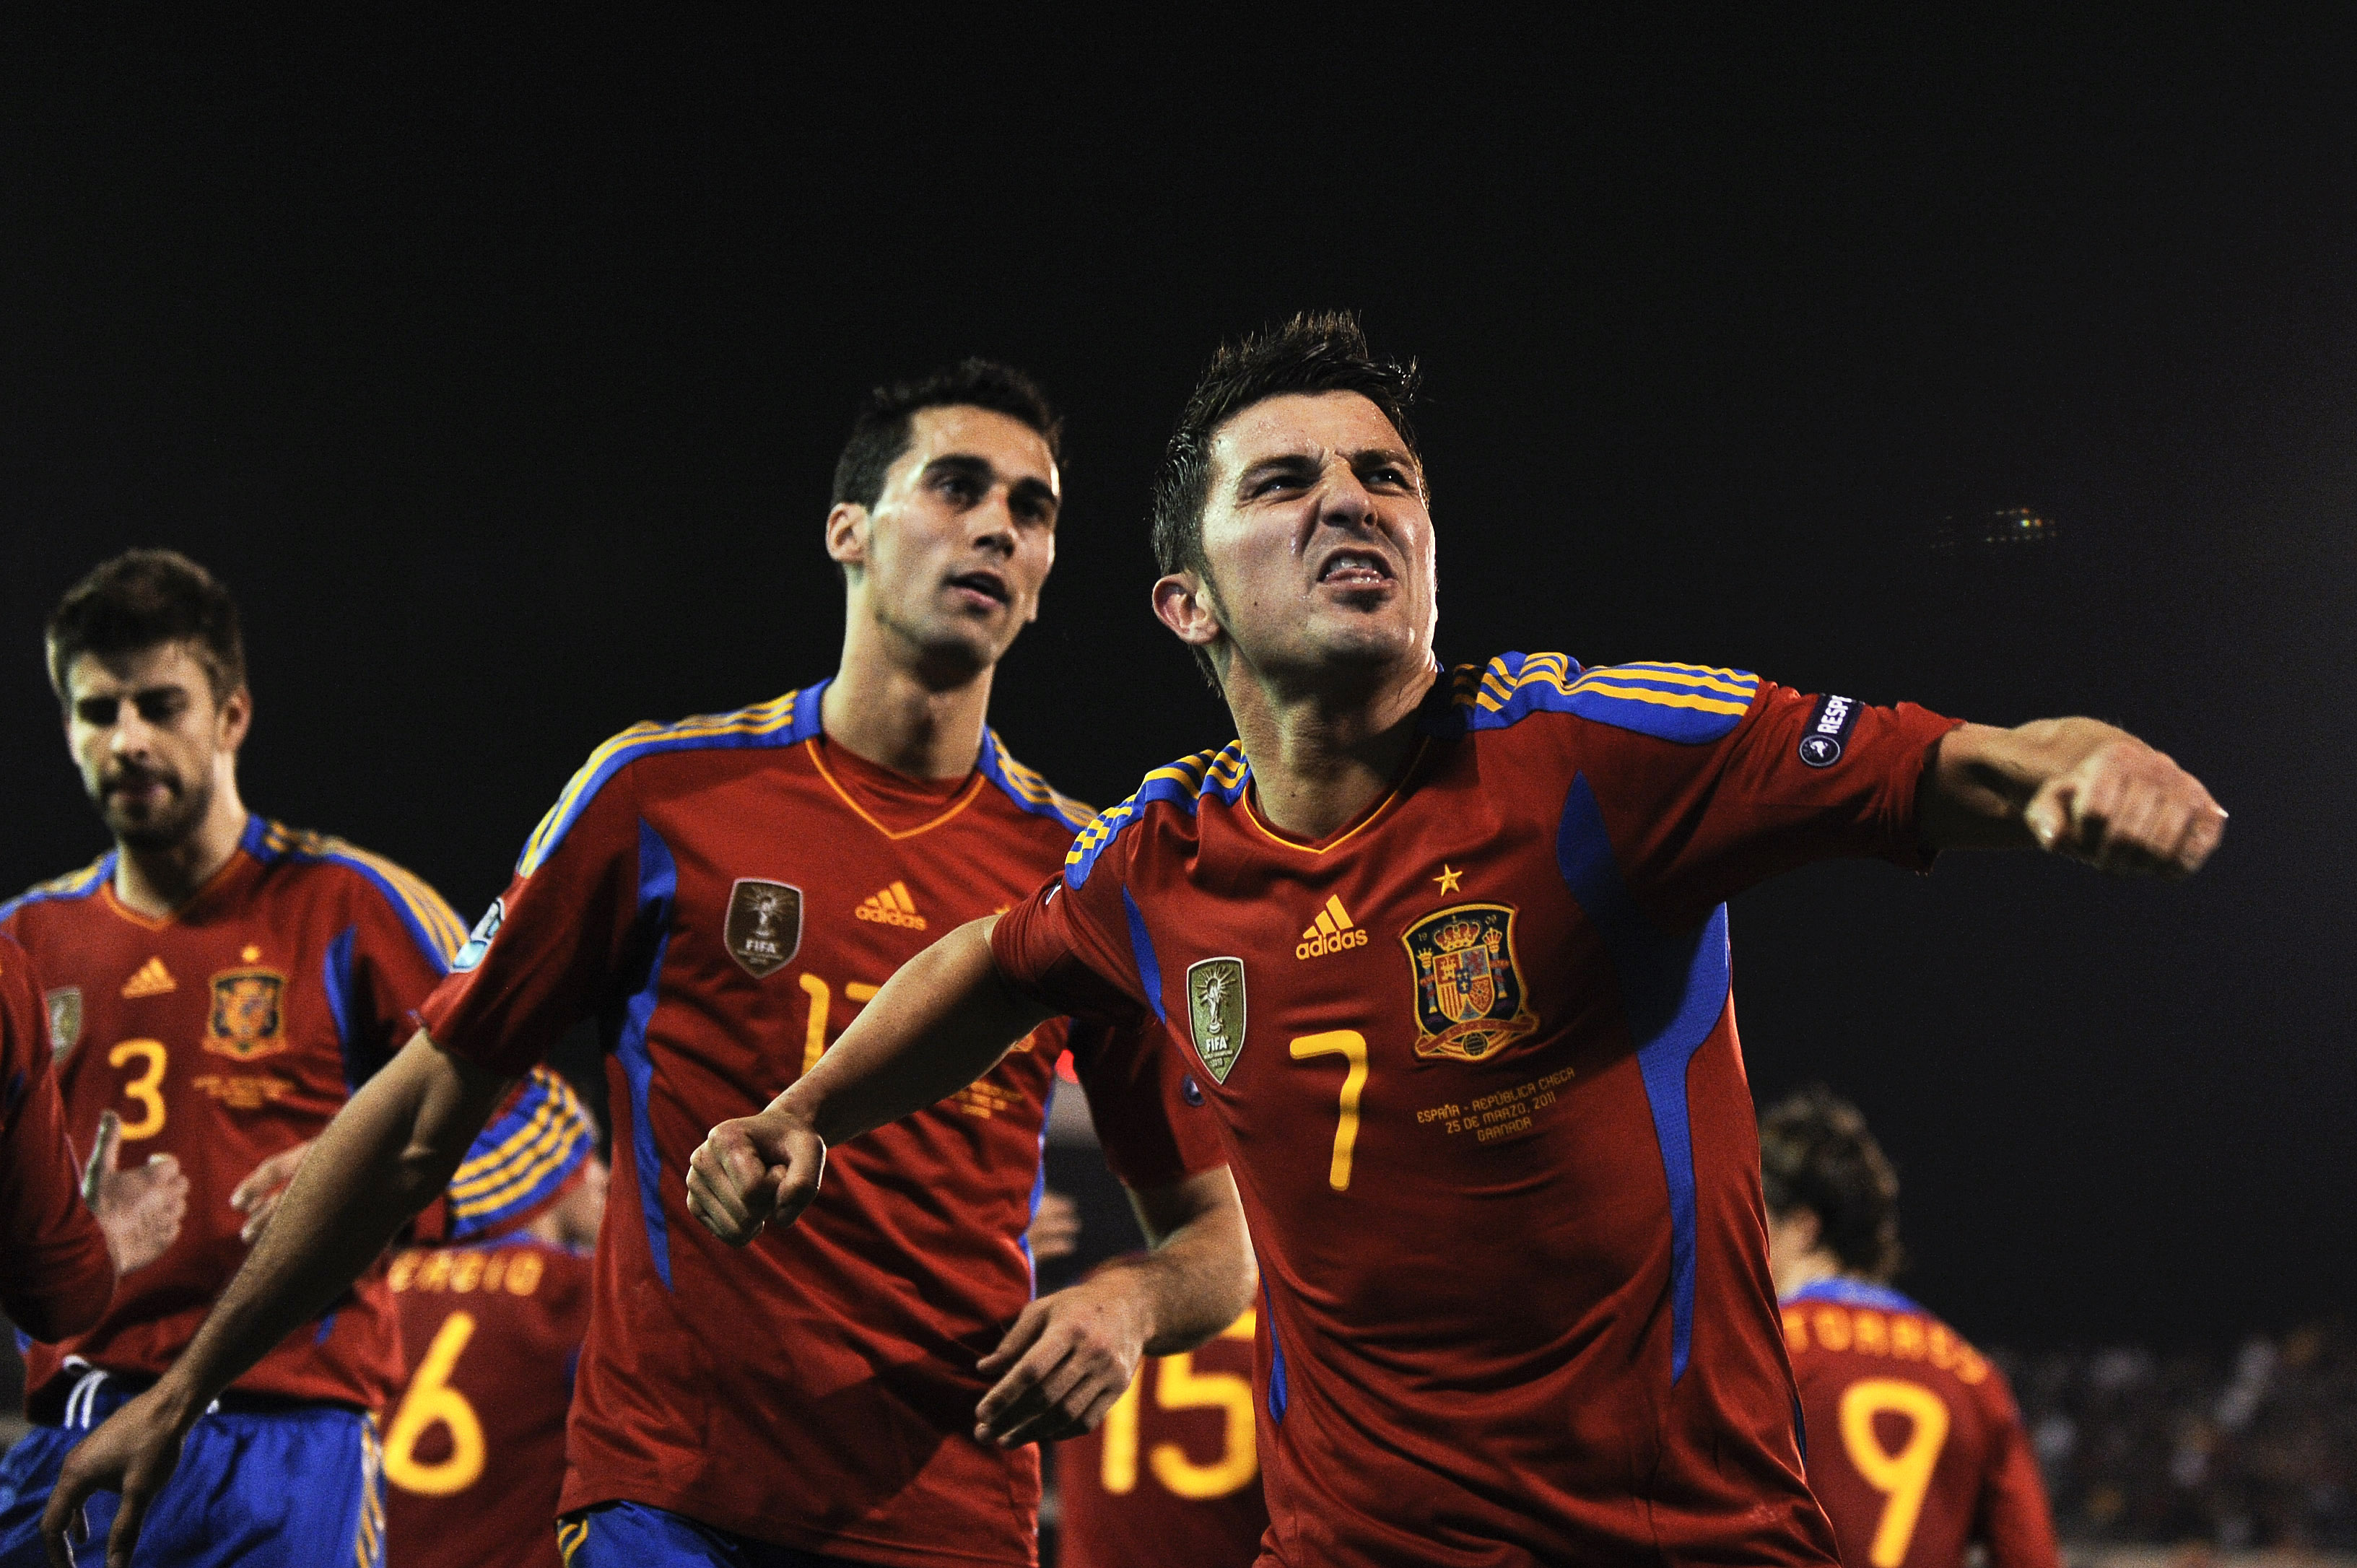 GRANADA, SPAIN - MARCH 25:  David Villa (R) of Spain celebrates after scoring his second goal during the UEFA EURO 2012 qualifier between Spain and Czech Republic at Los Carmenes Stadium on March 25, 2011 in Granada, Spain.  Spain win 2-1. (Photo by David